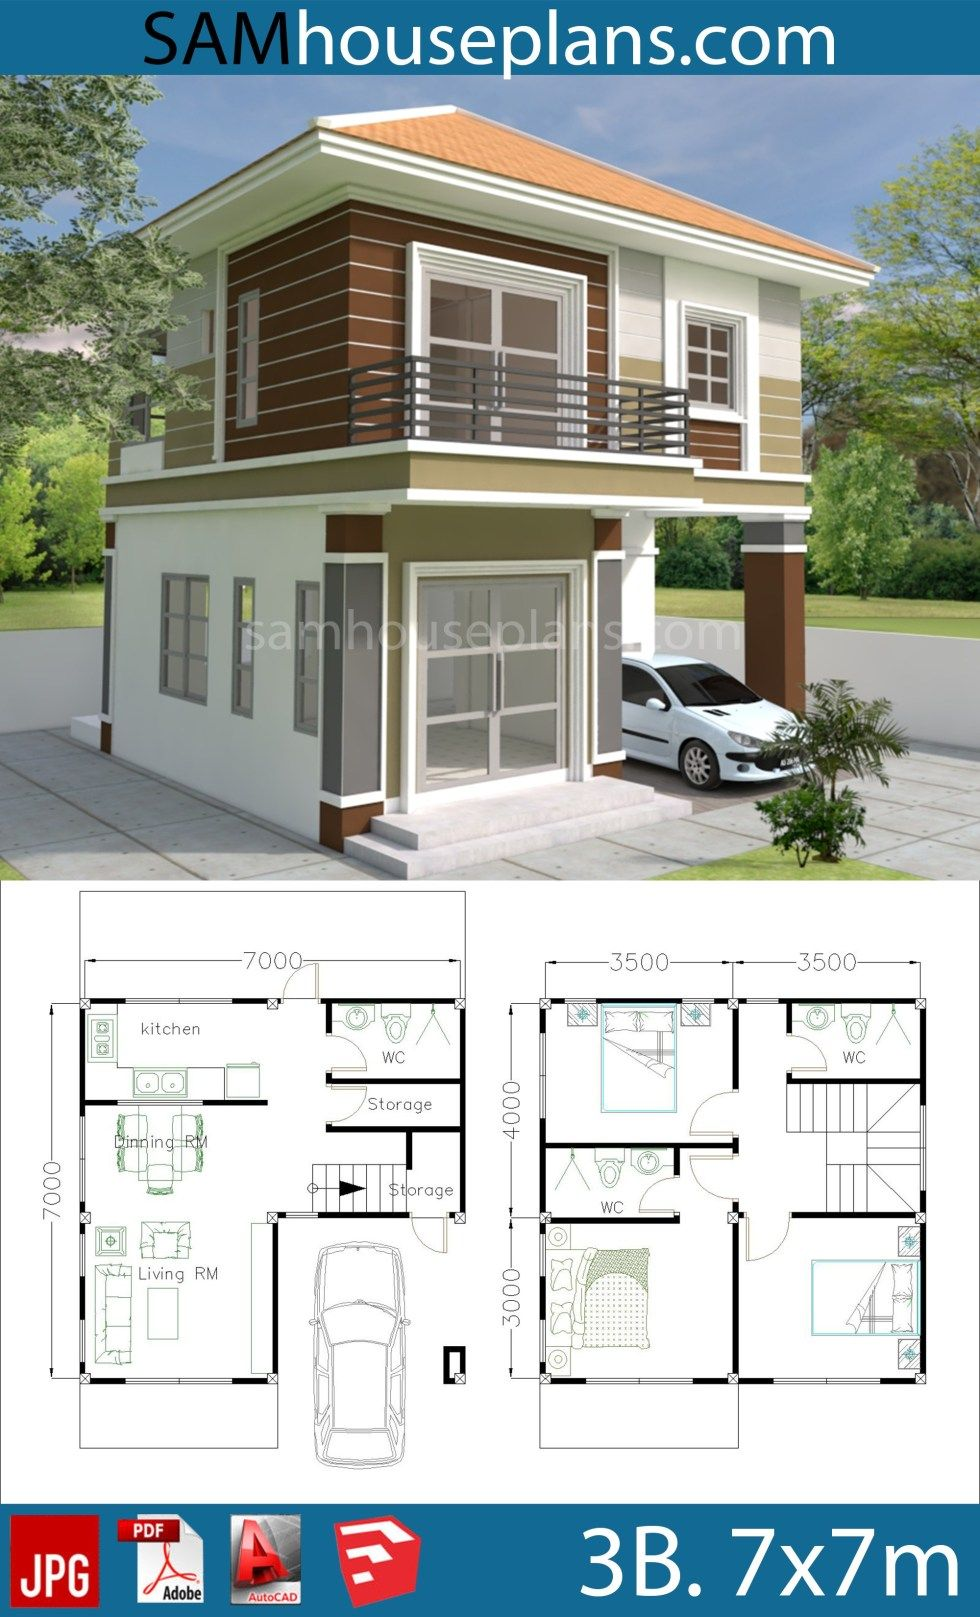 House Plans 7x7m with 3 Bedrooms is part of Home design plan - In link download ground floor jpg, Pdf 3d photo   Sketchup file in Meter Autocad file (Layout plan)